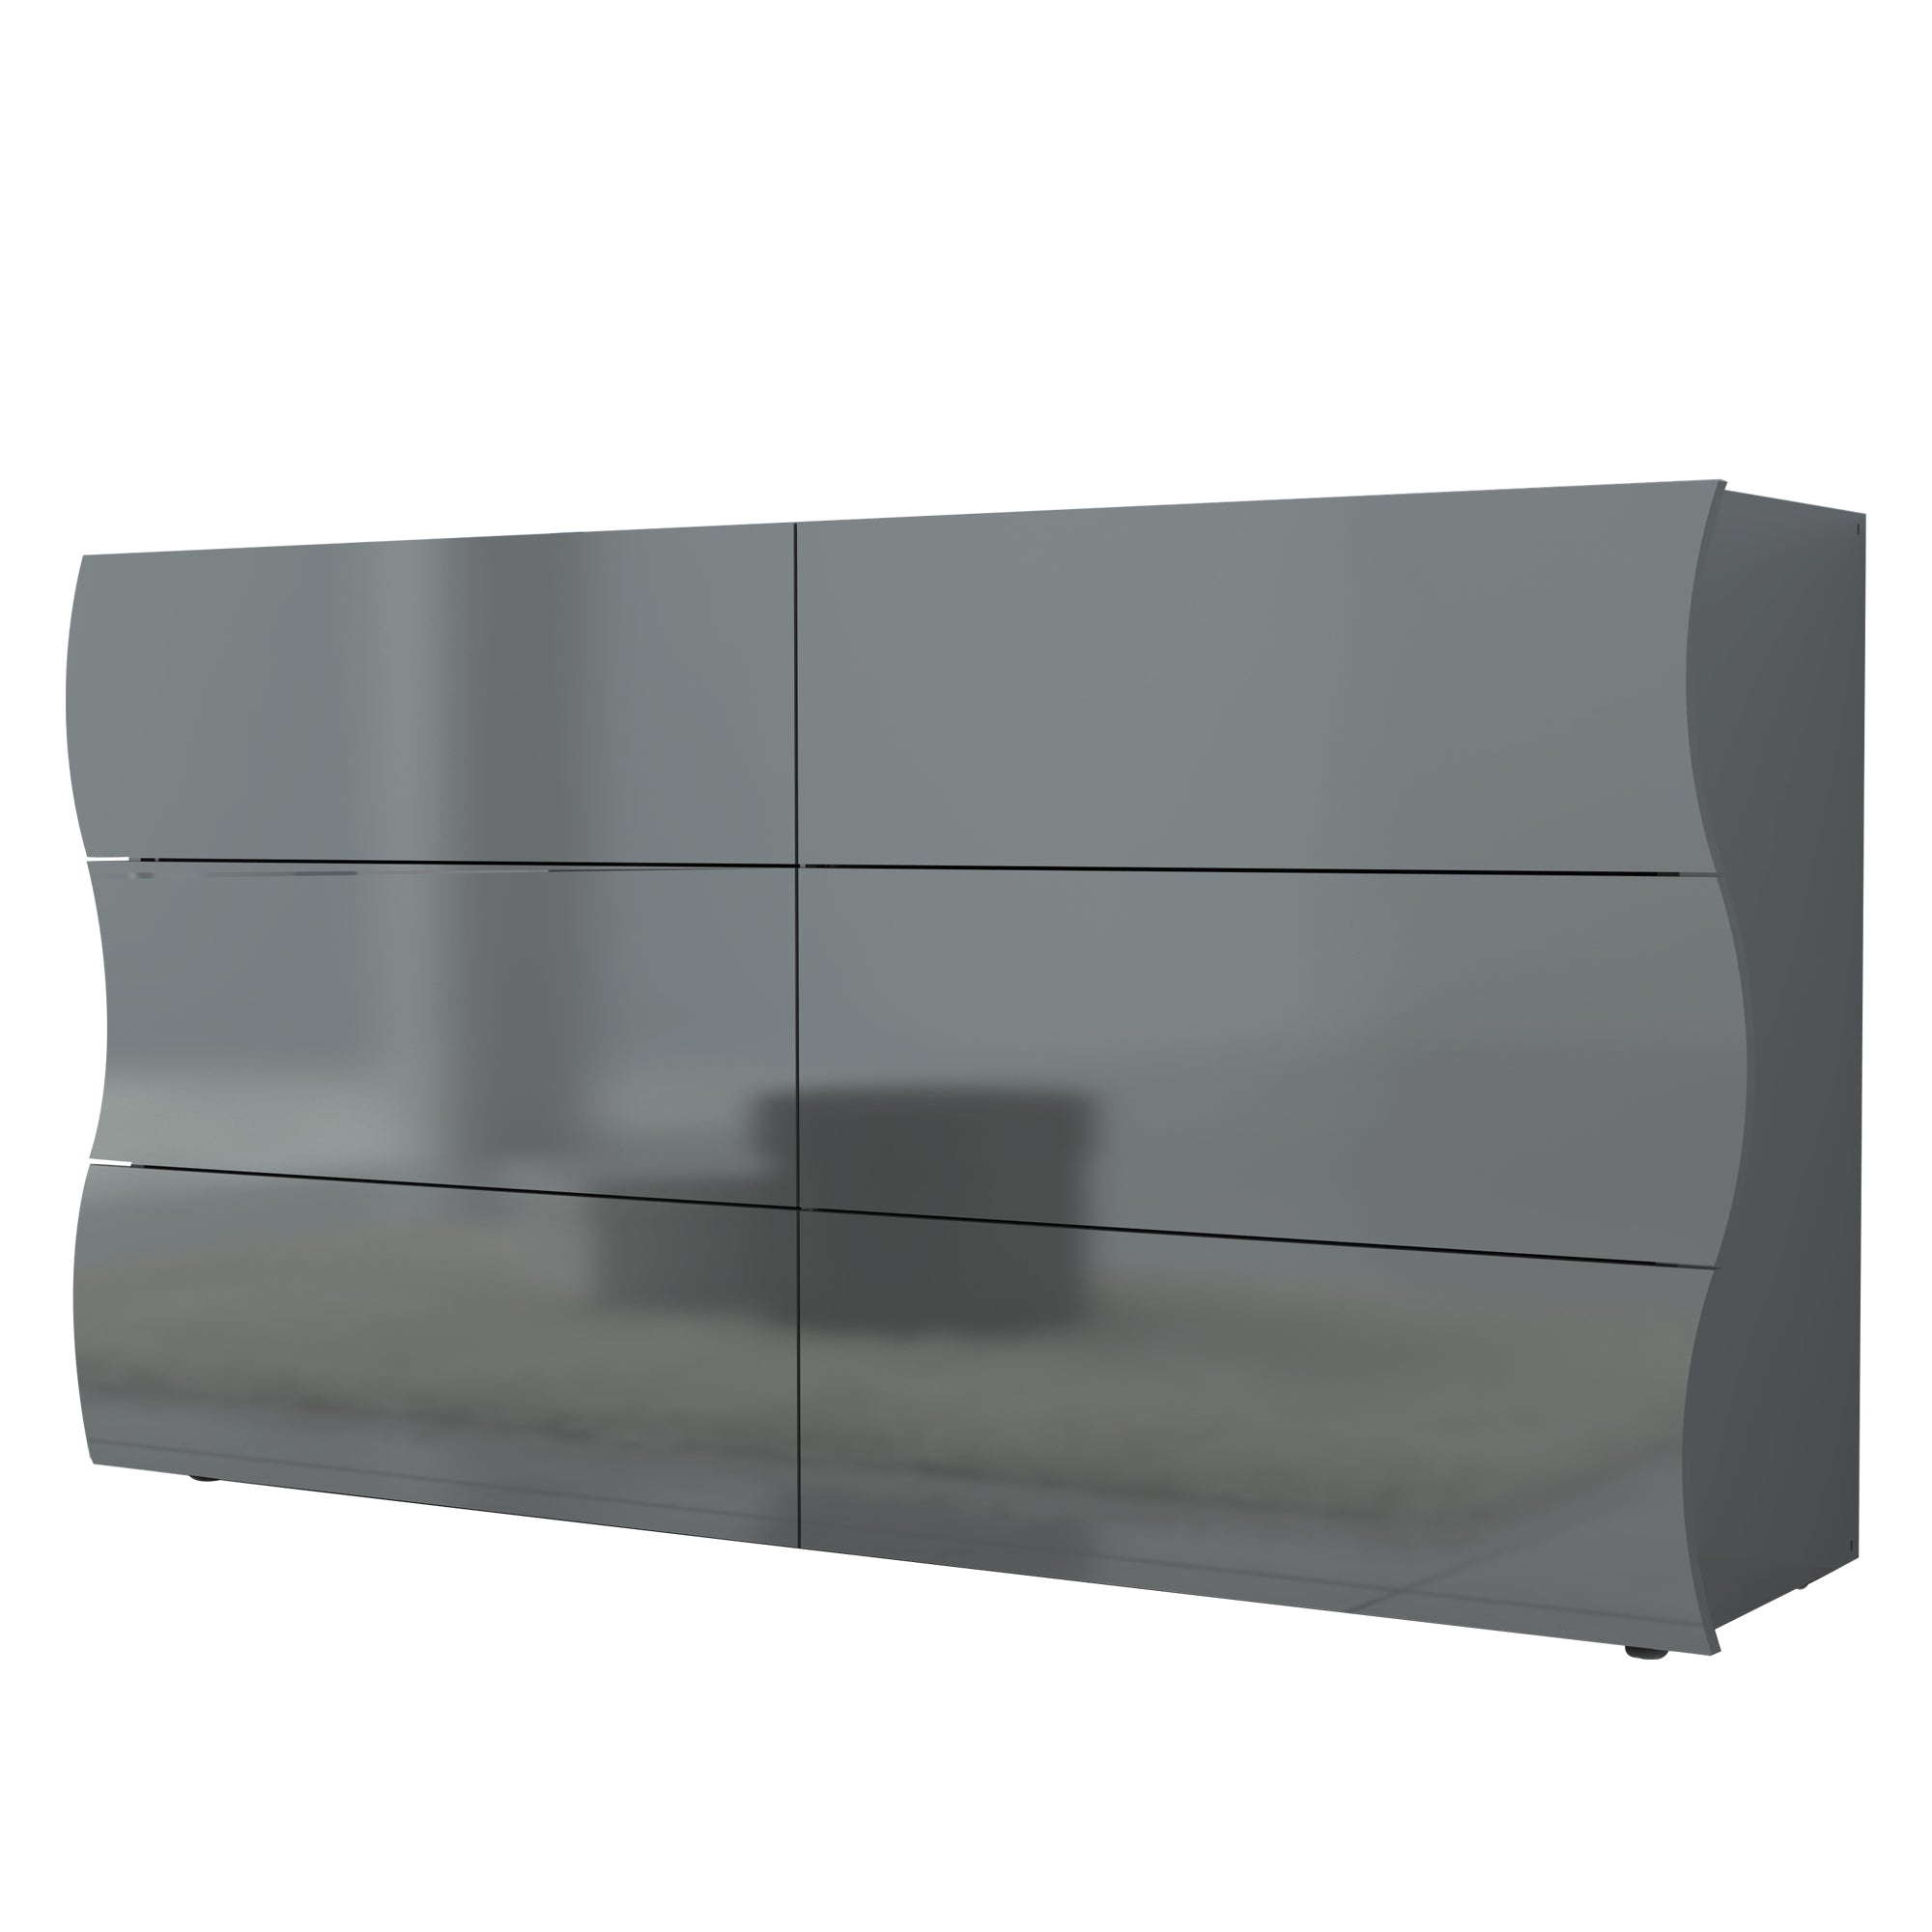 Onda High Gloss 6 Drawers Dresser